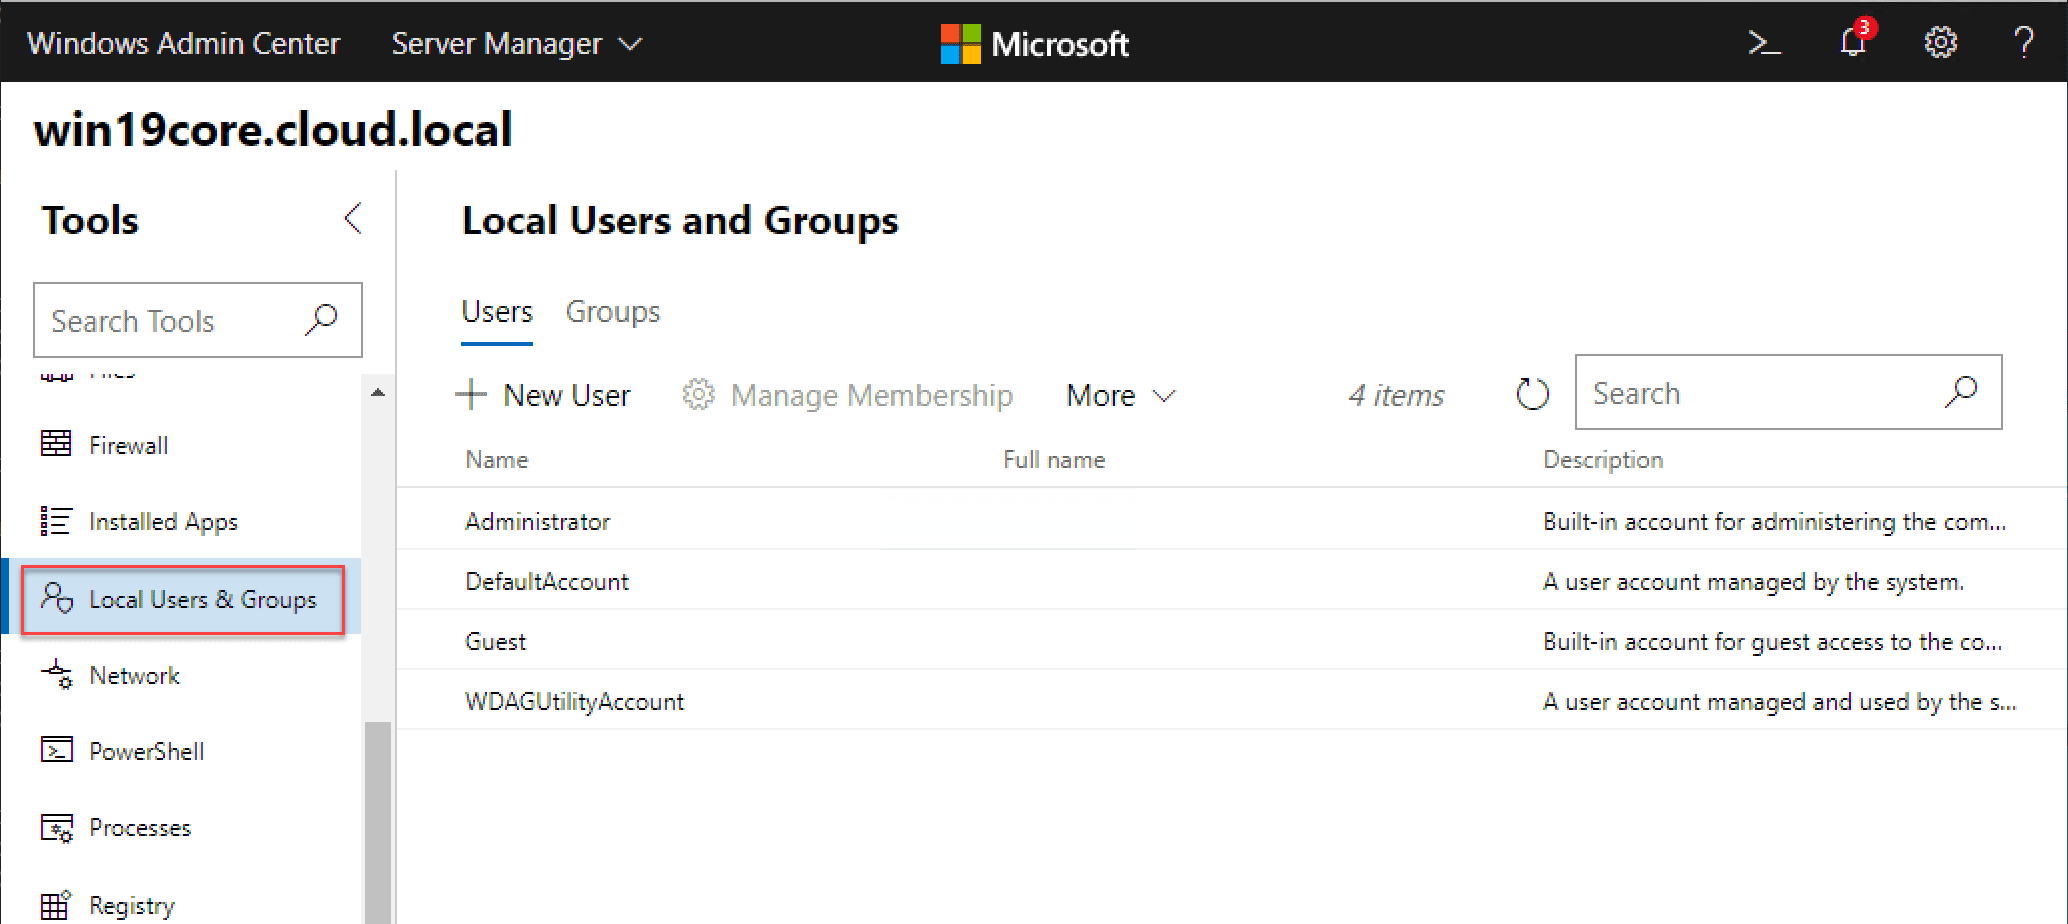 Managing-Local-Users-and-Groups-with-Windows-Admin-Center Managing Windows Server 2019 Core with Windows Admin Center